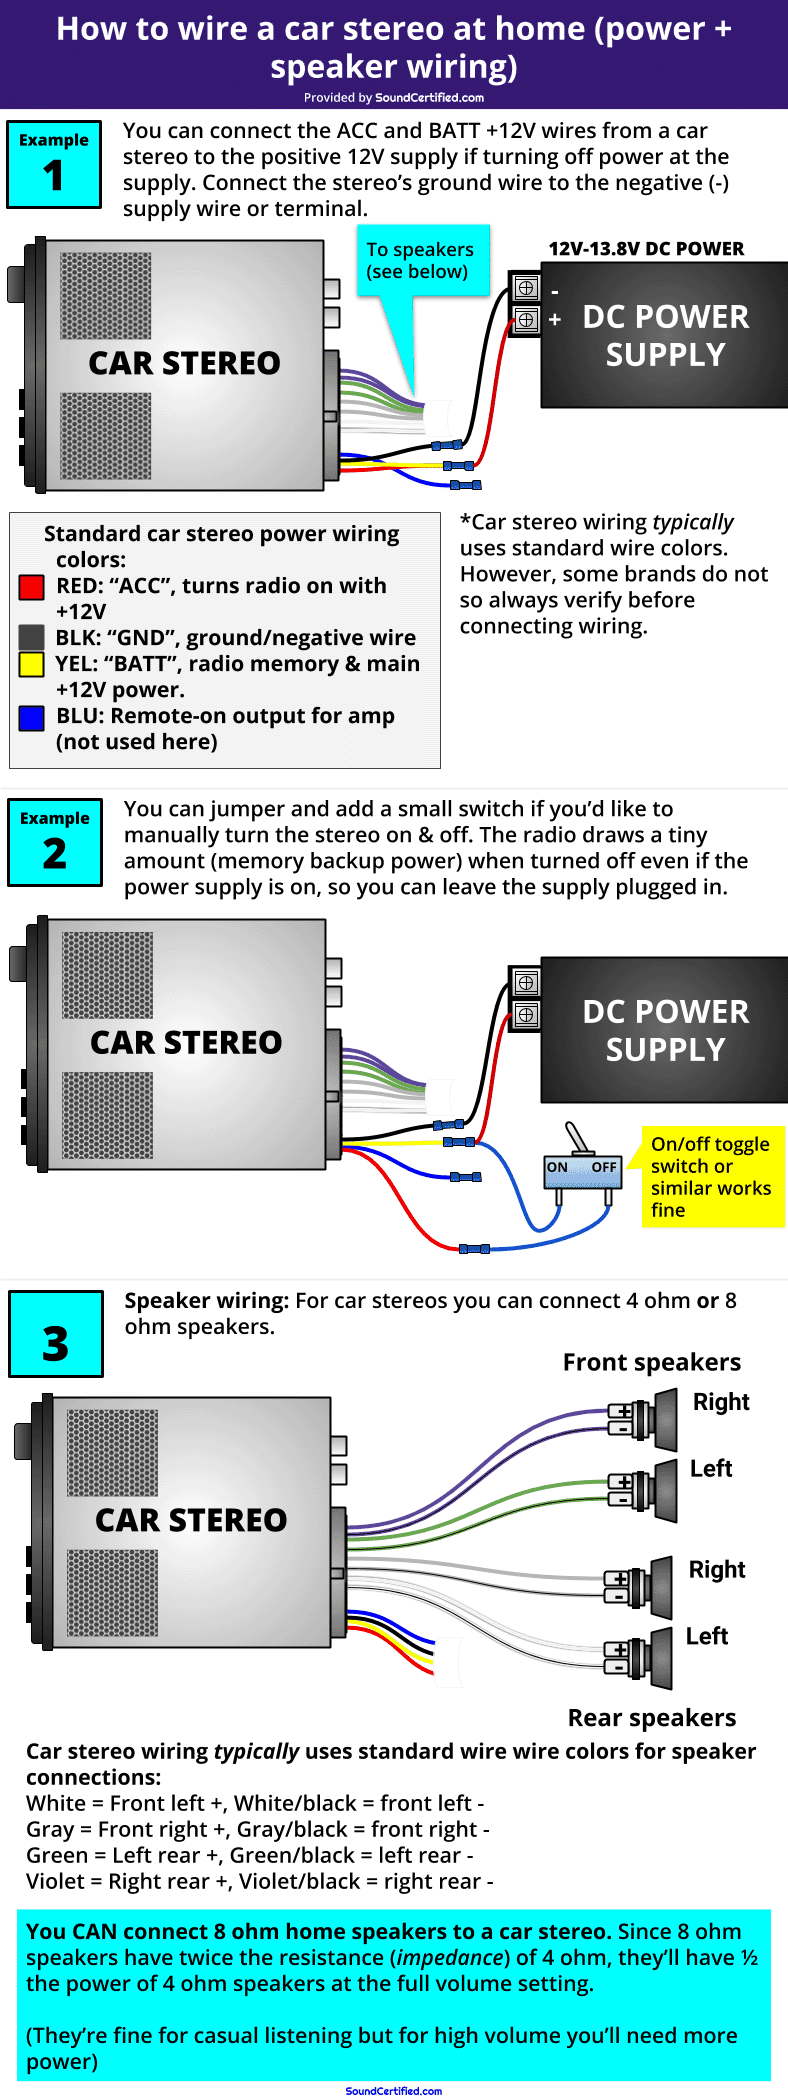 How To Connect A Car Stereo To A House Plug : connect, stereo, house, Stereo, Power, (With, Diagrams)